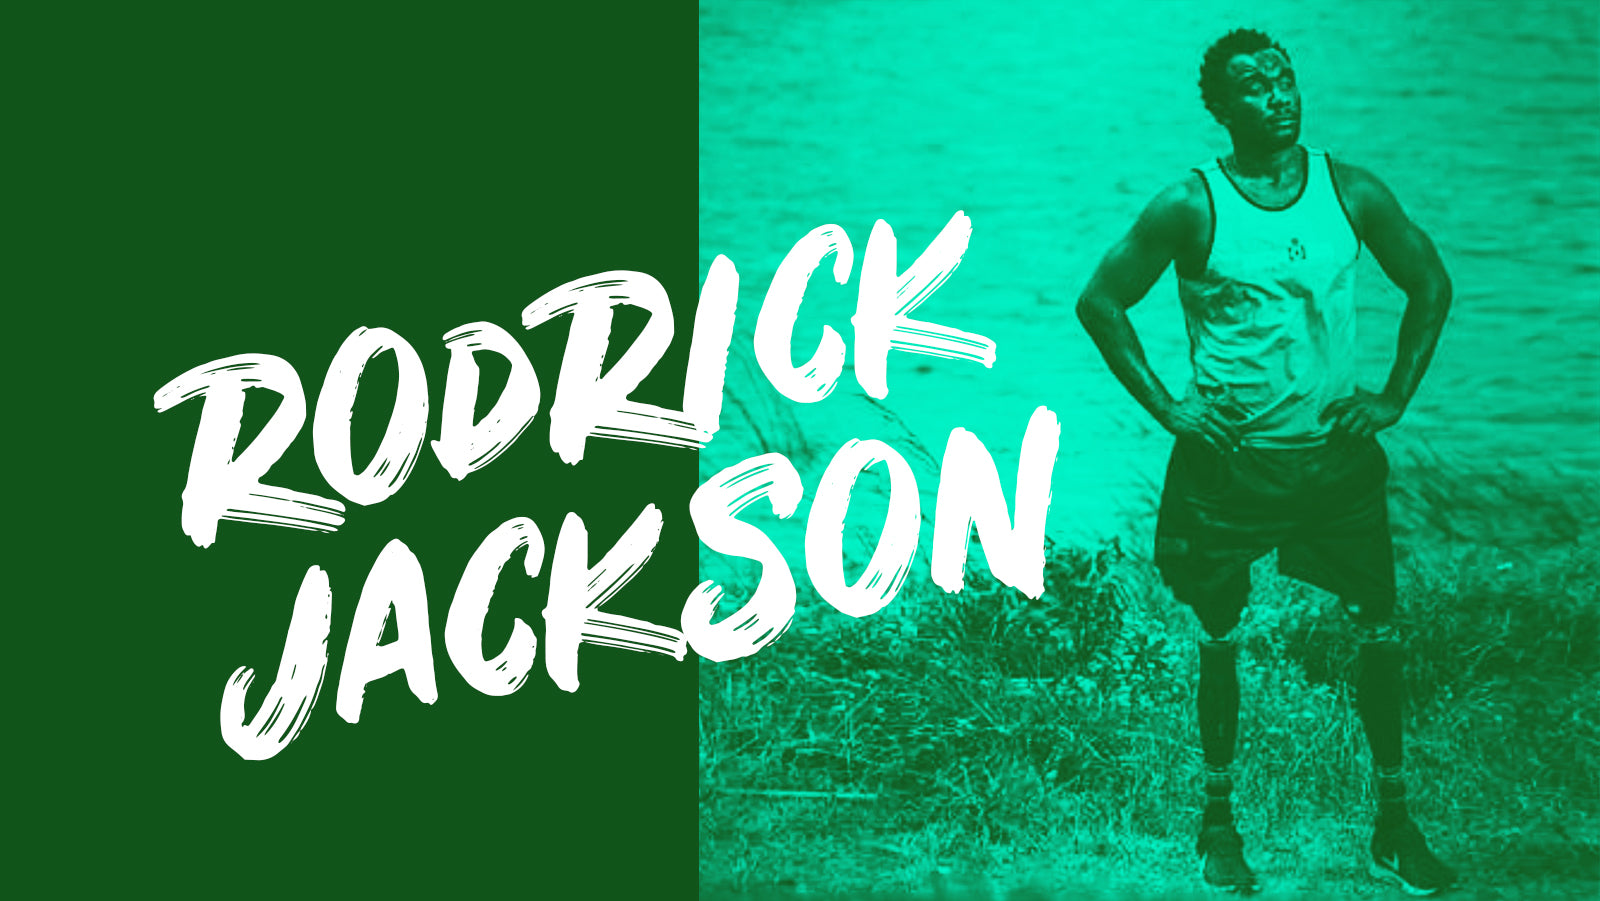 Roderick Sewell Jackson's Top Four Plant-Based Diet Protein Hacks